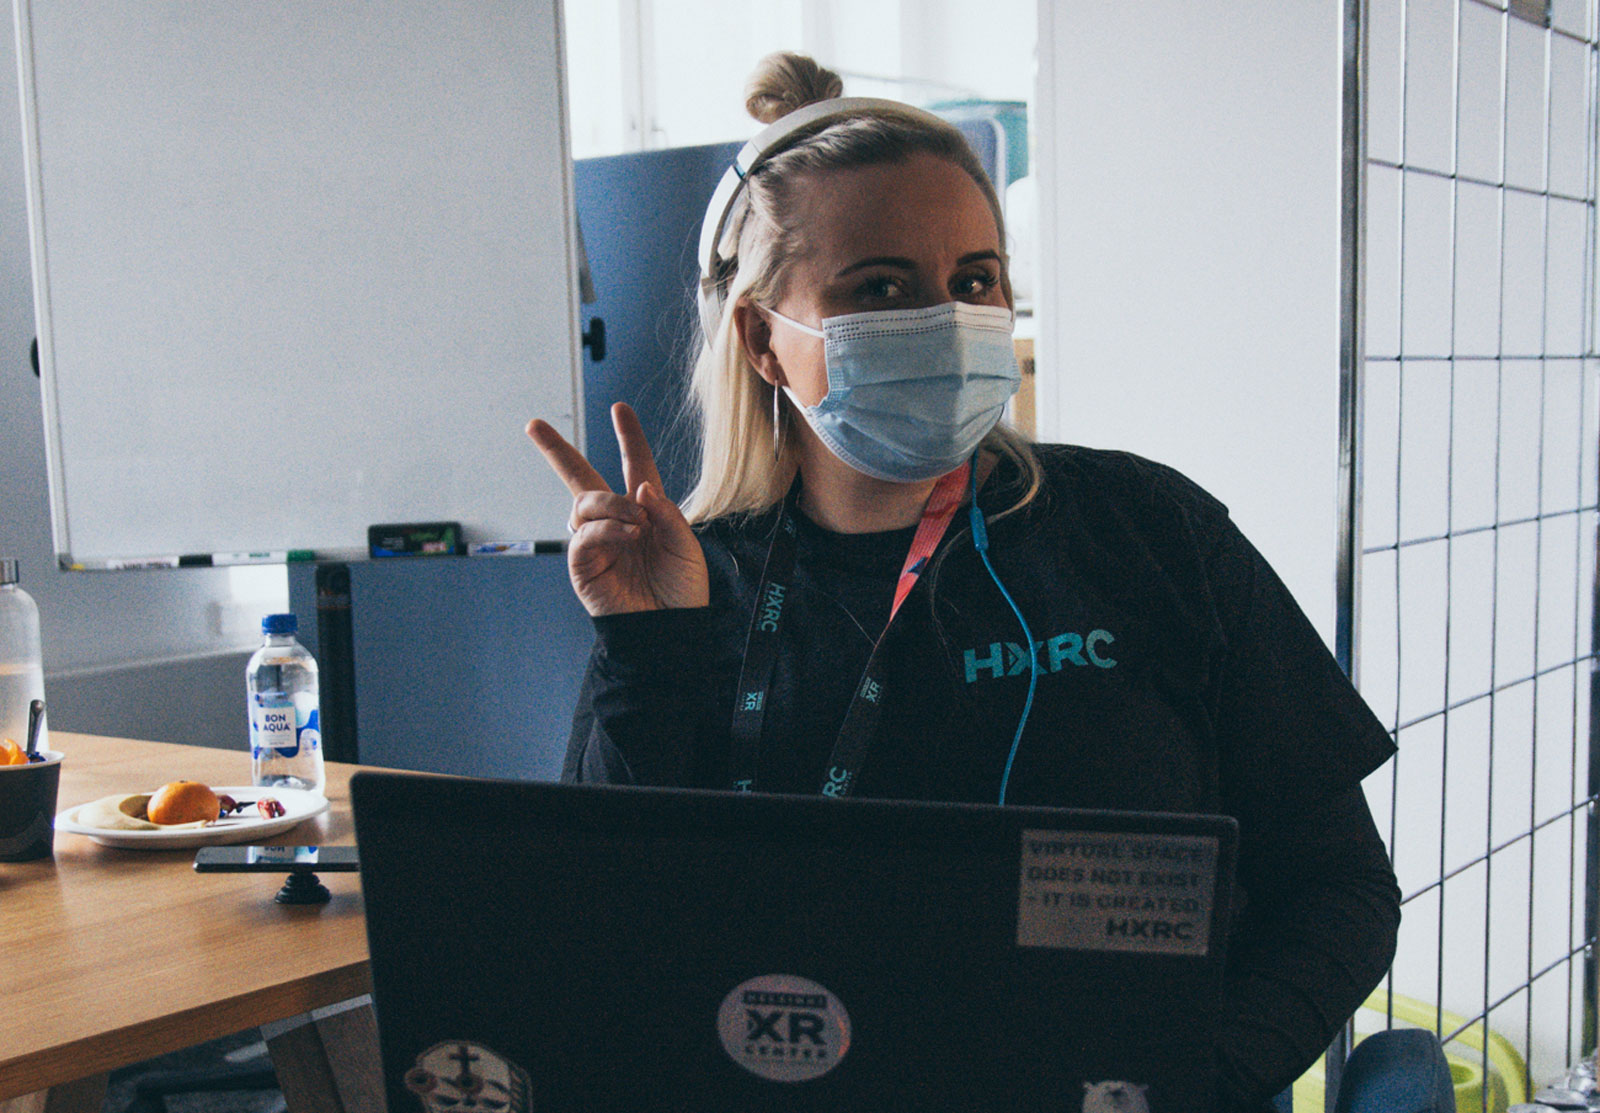 One of the Helsinki XR Center team members sitting, showing a peace sign and smiling with mask on